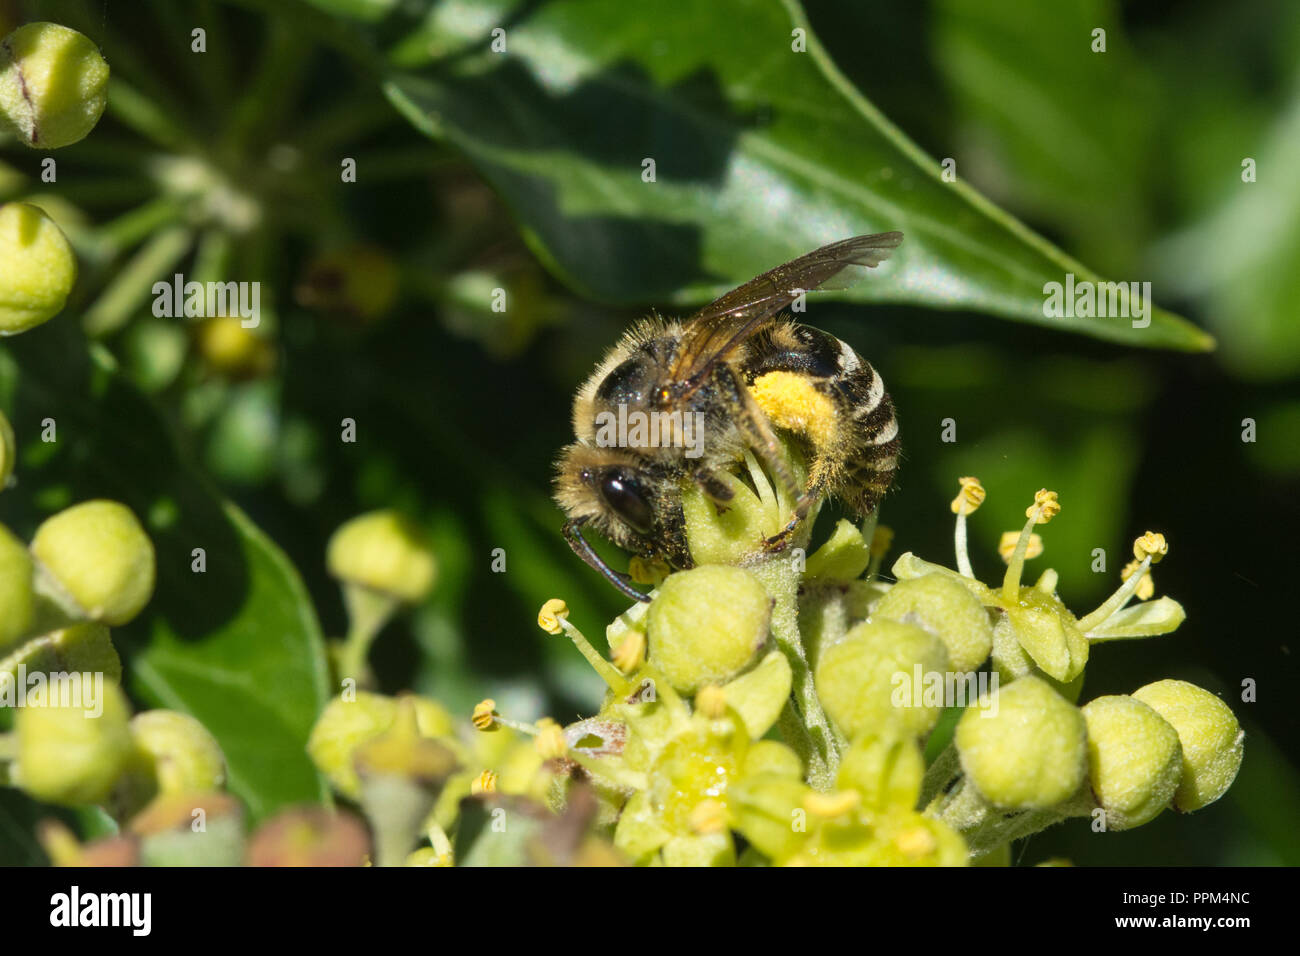 Ivy bee (Colletes hederae) feeding on nectar of ivy flowers (Hedera helix) in late September and collecting pollen - Stock Image